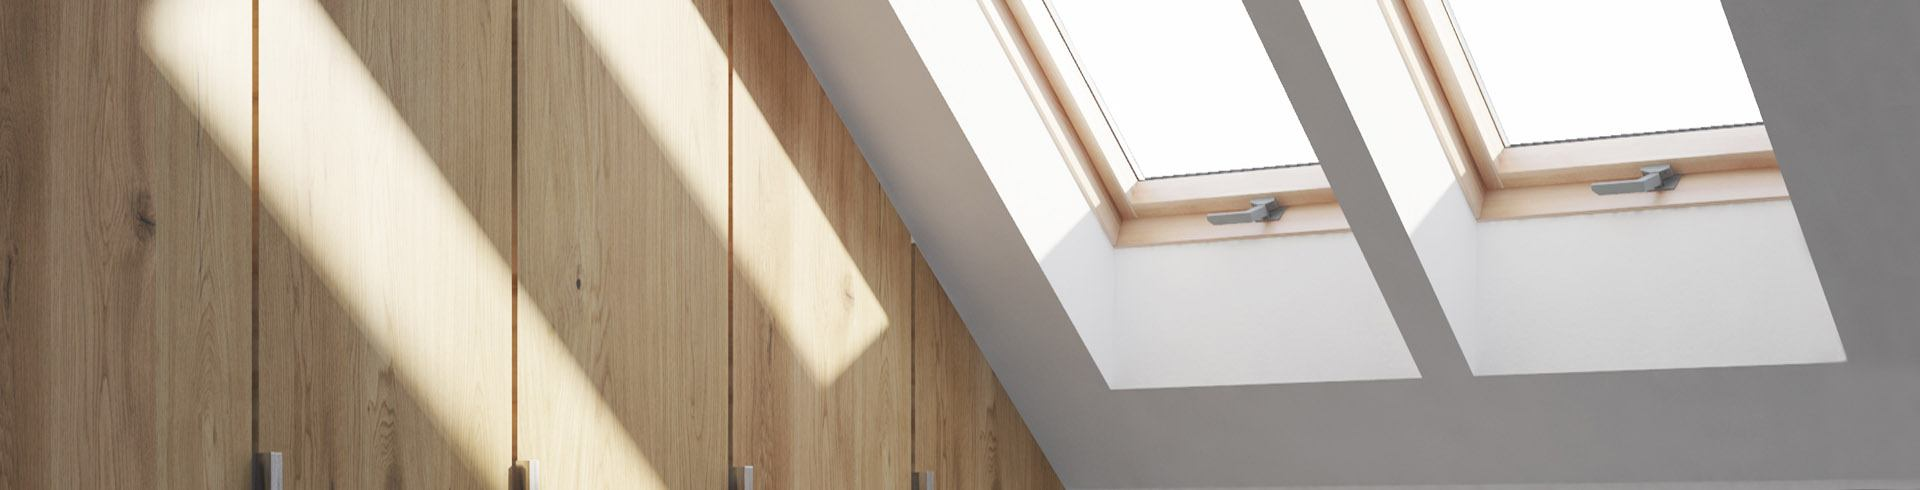 Sterlingbuild RoofLITE windows